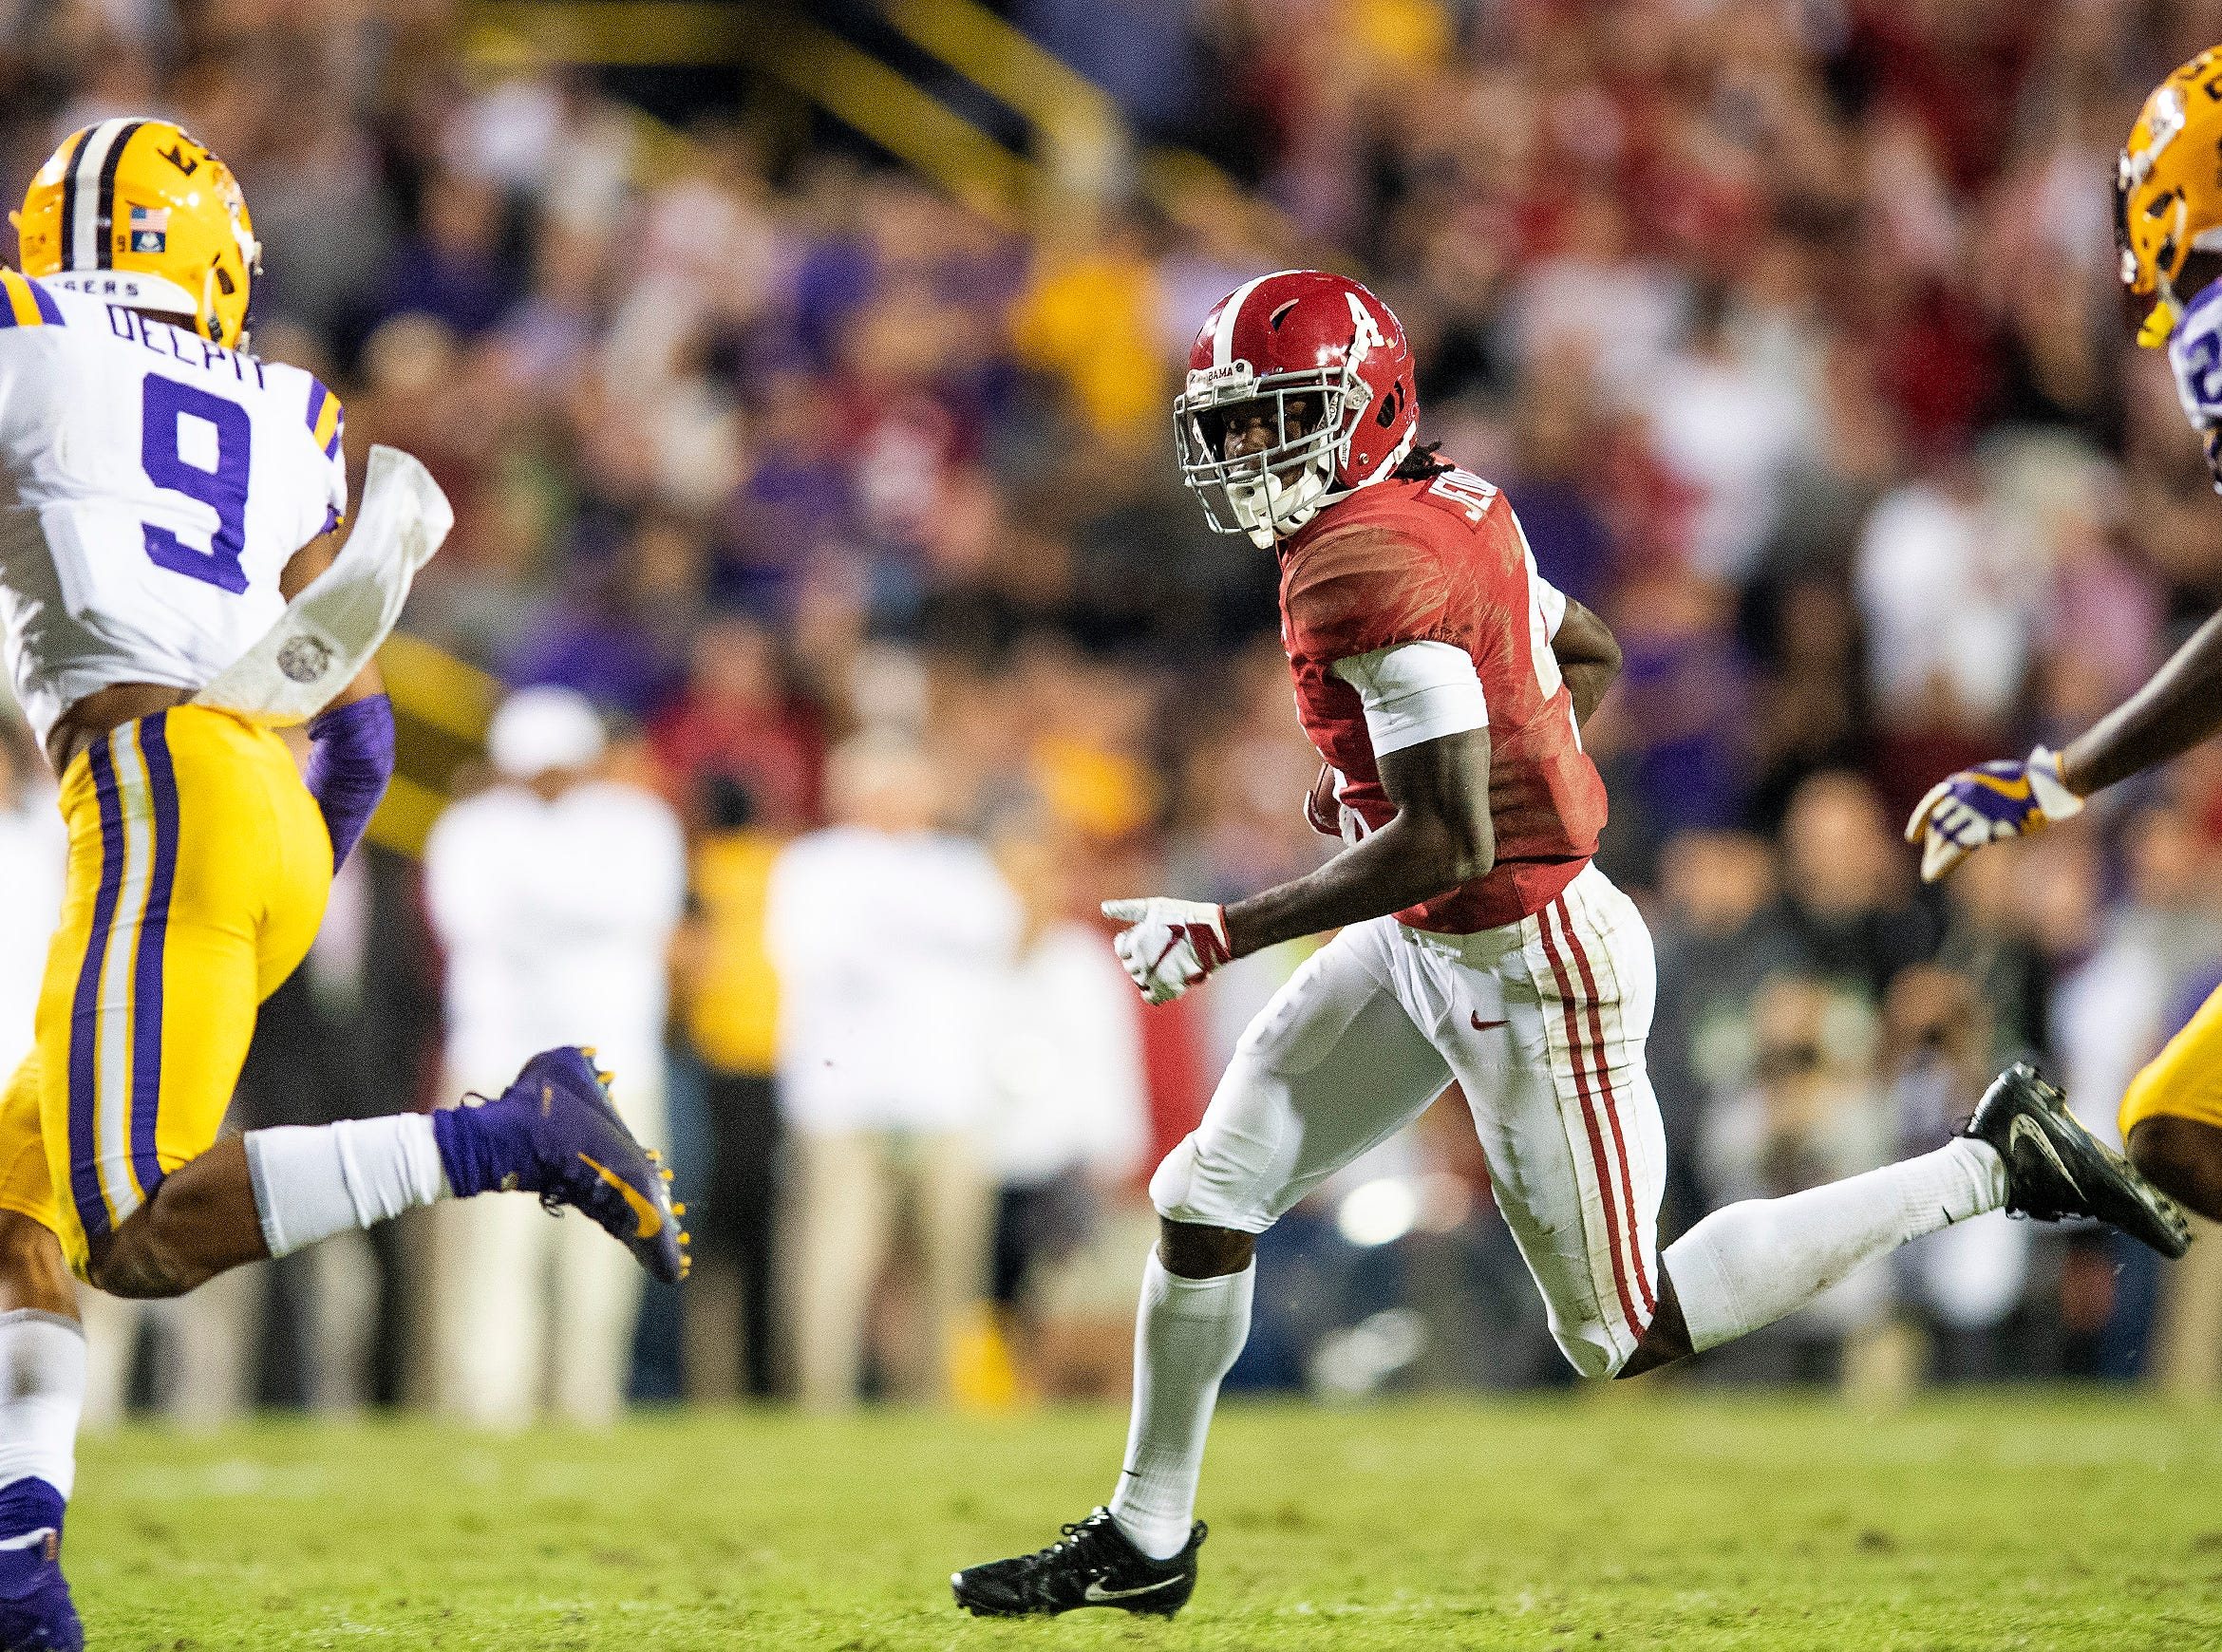 Alabama wide receiver Jerry Jeudy (4) carries the ball against LSU in second half action at Tiger Stadium in Baton Rouge, La., on Saturday November 3, 2018.